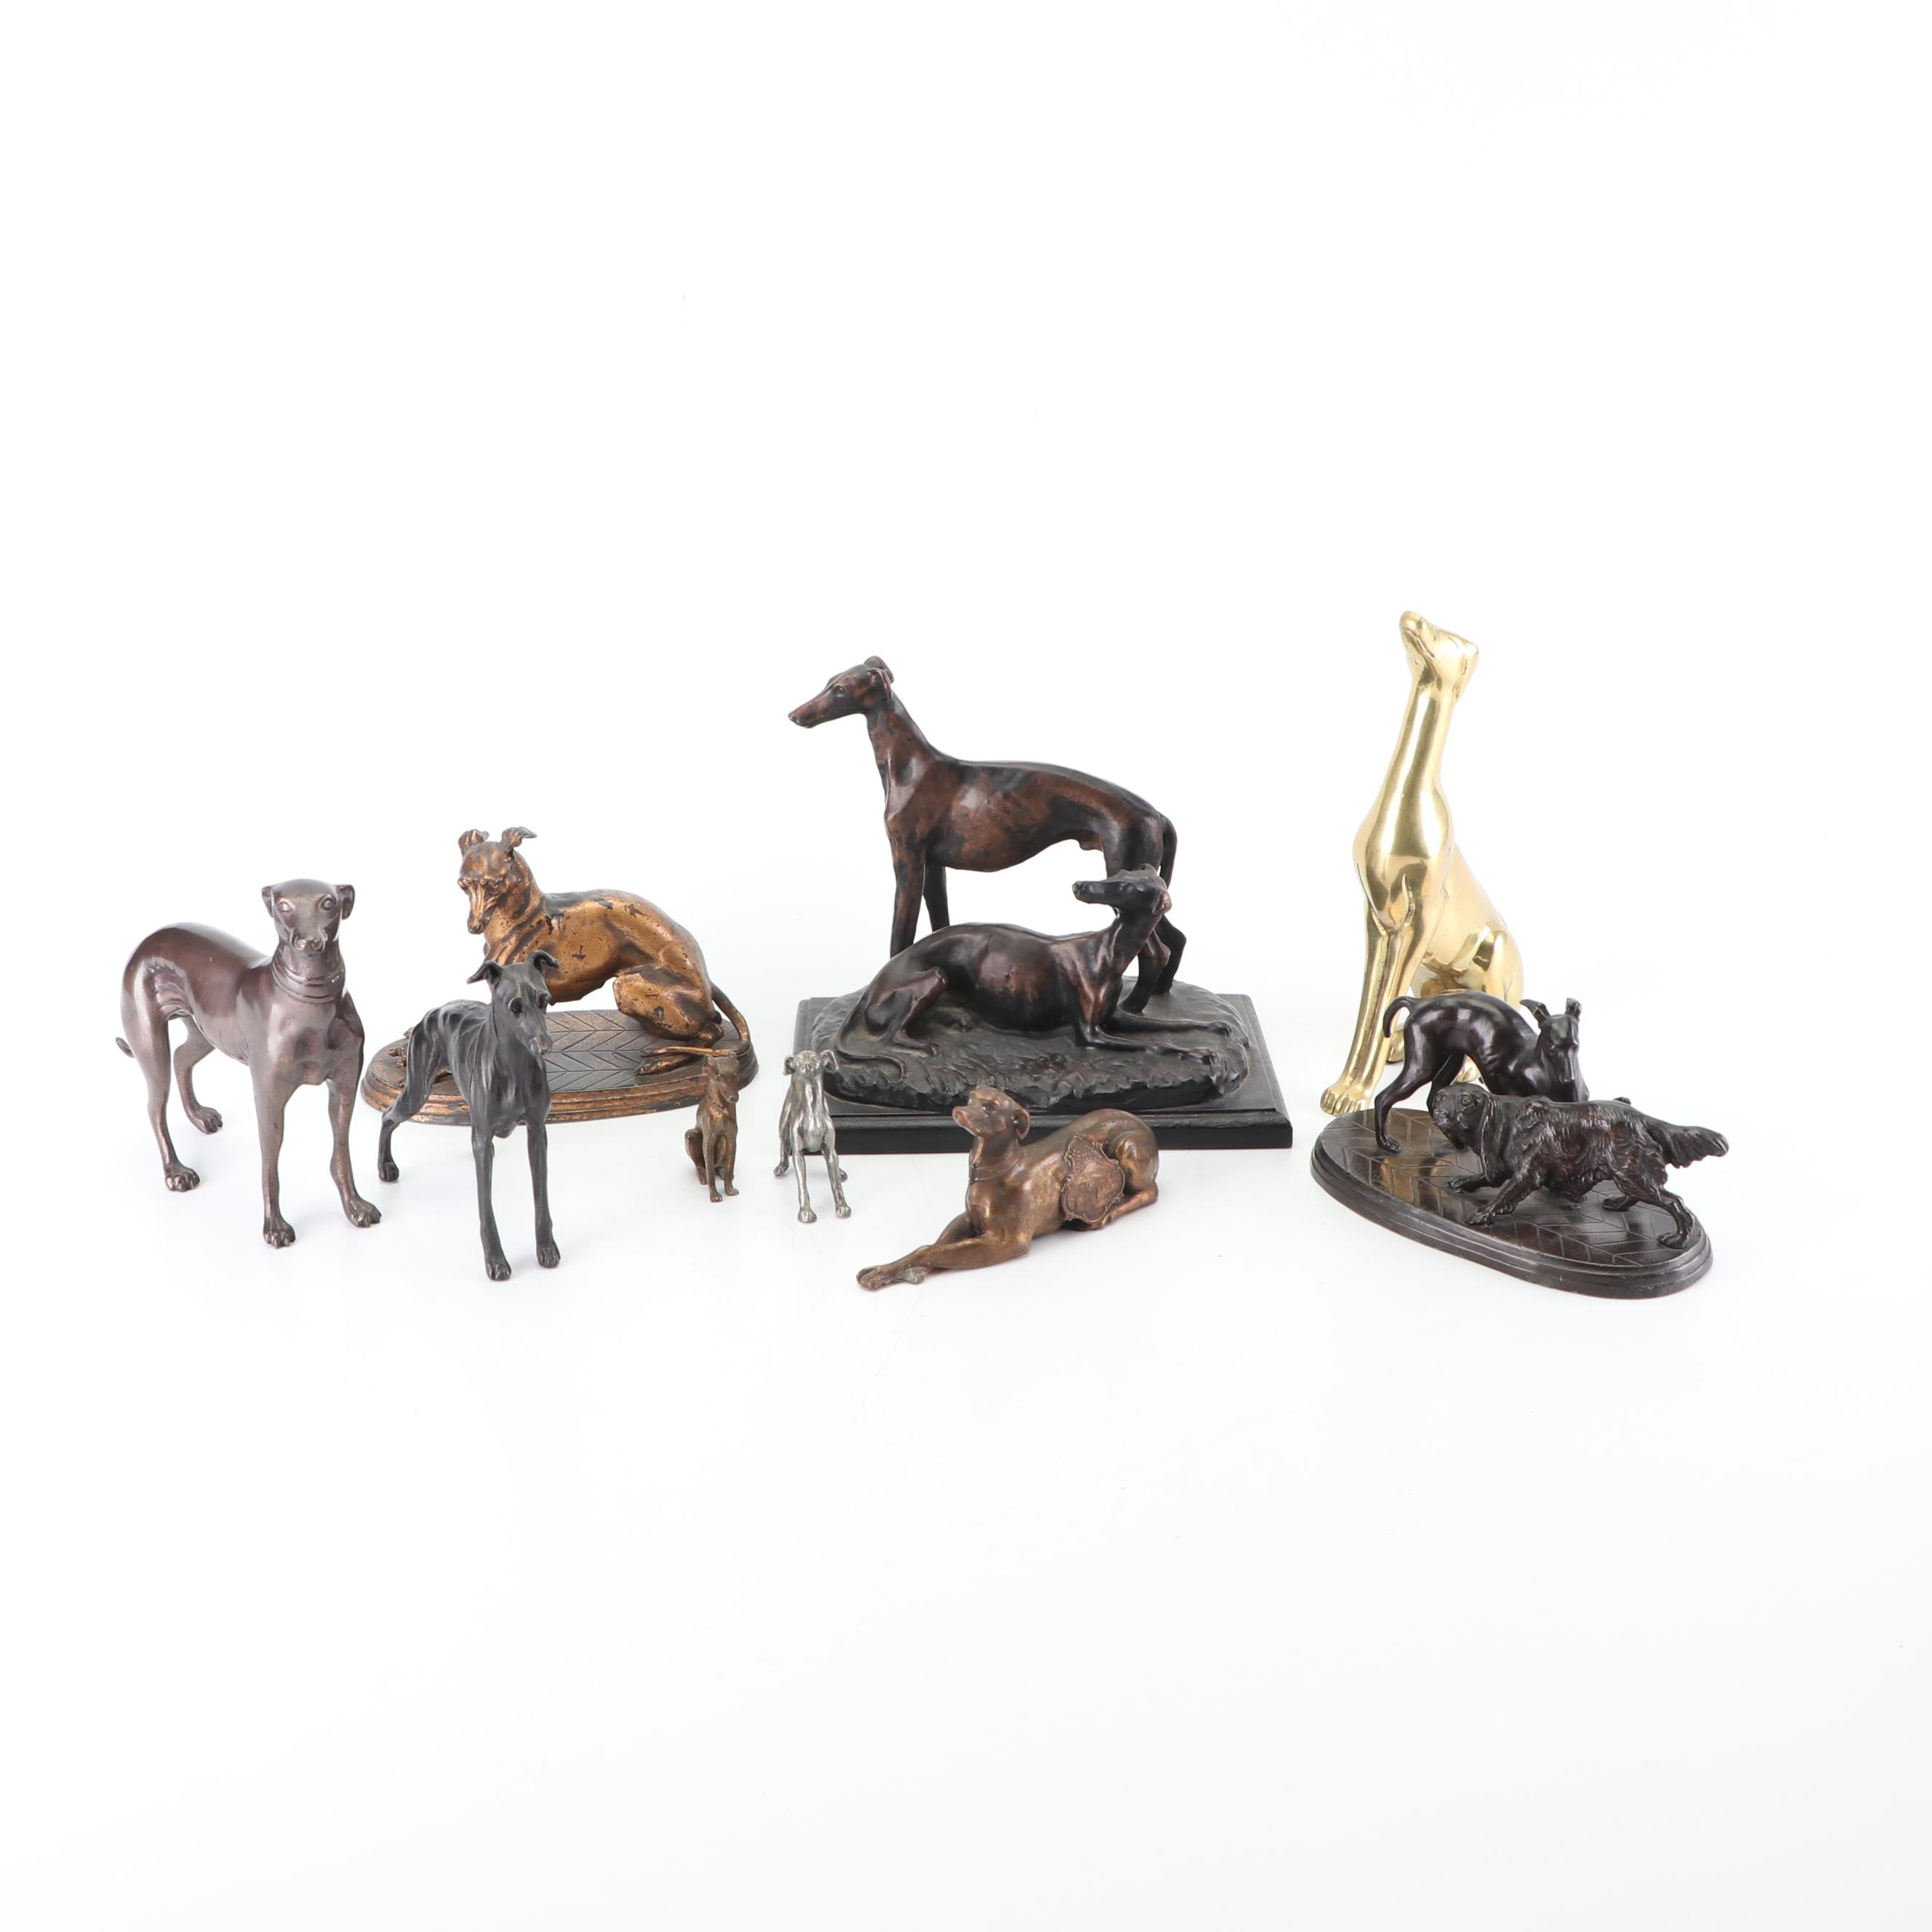 Metal and Resin Greyhound Dog Figurines